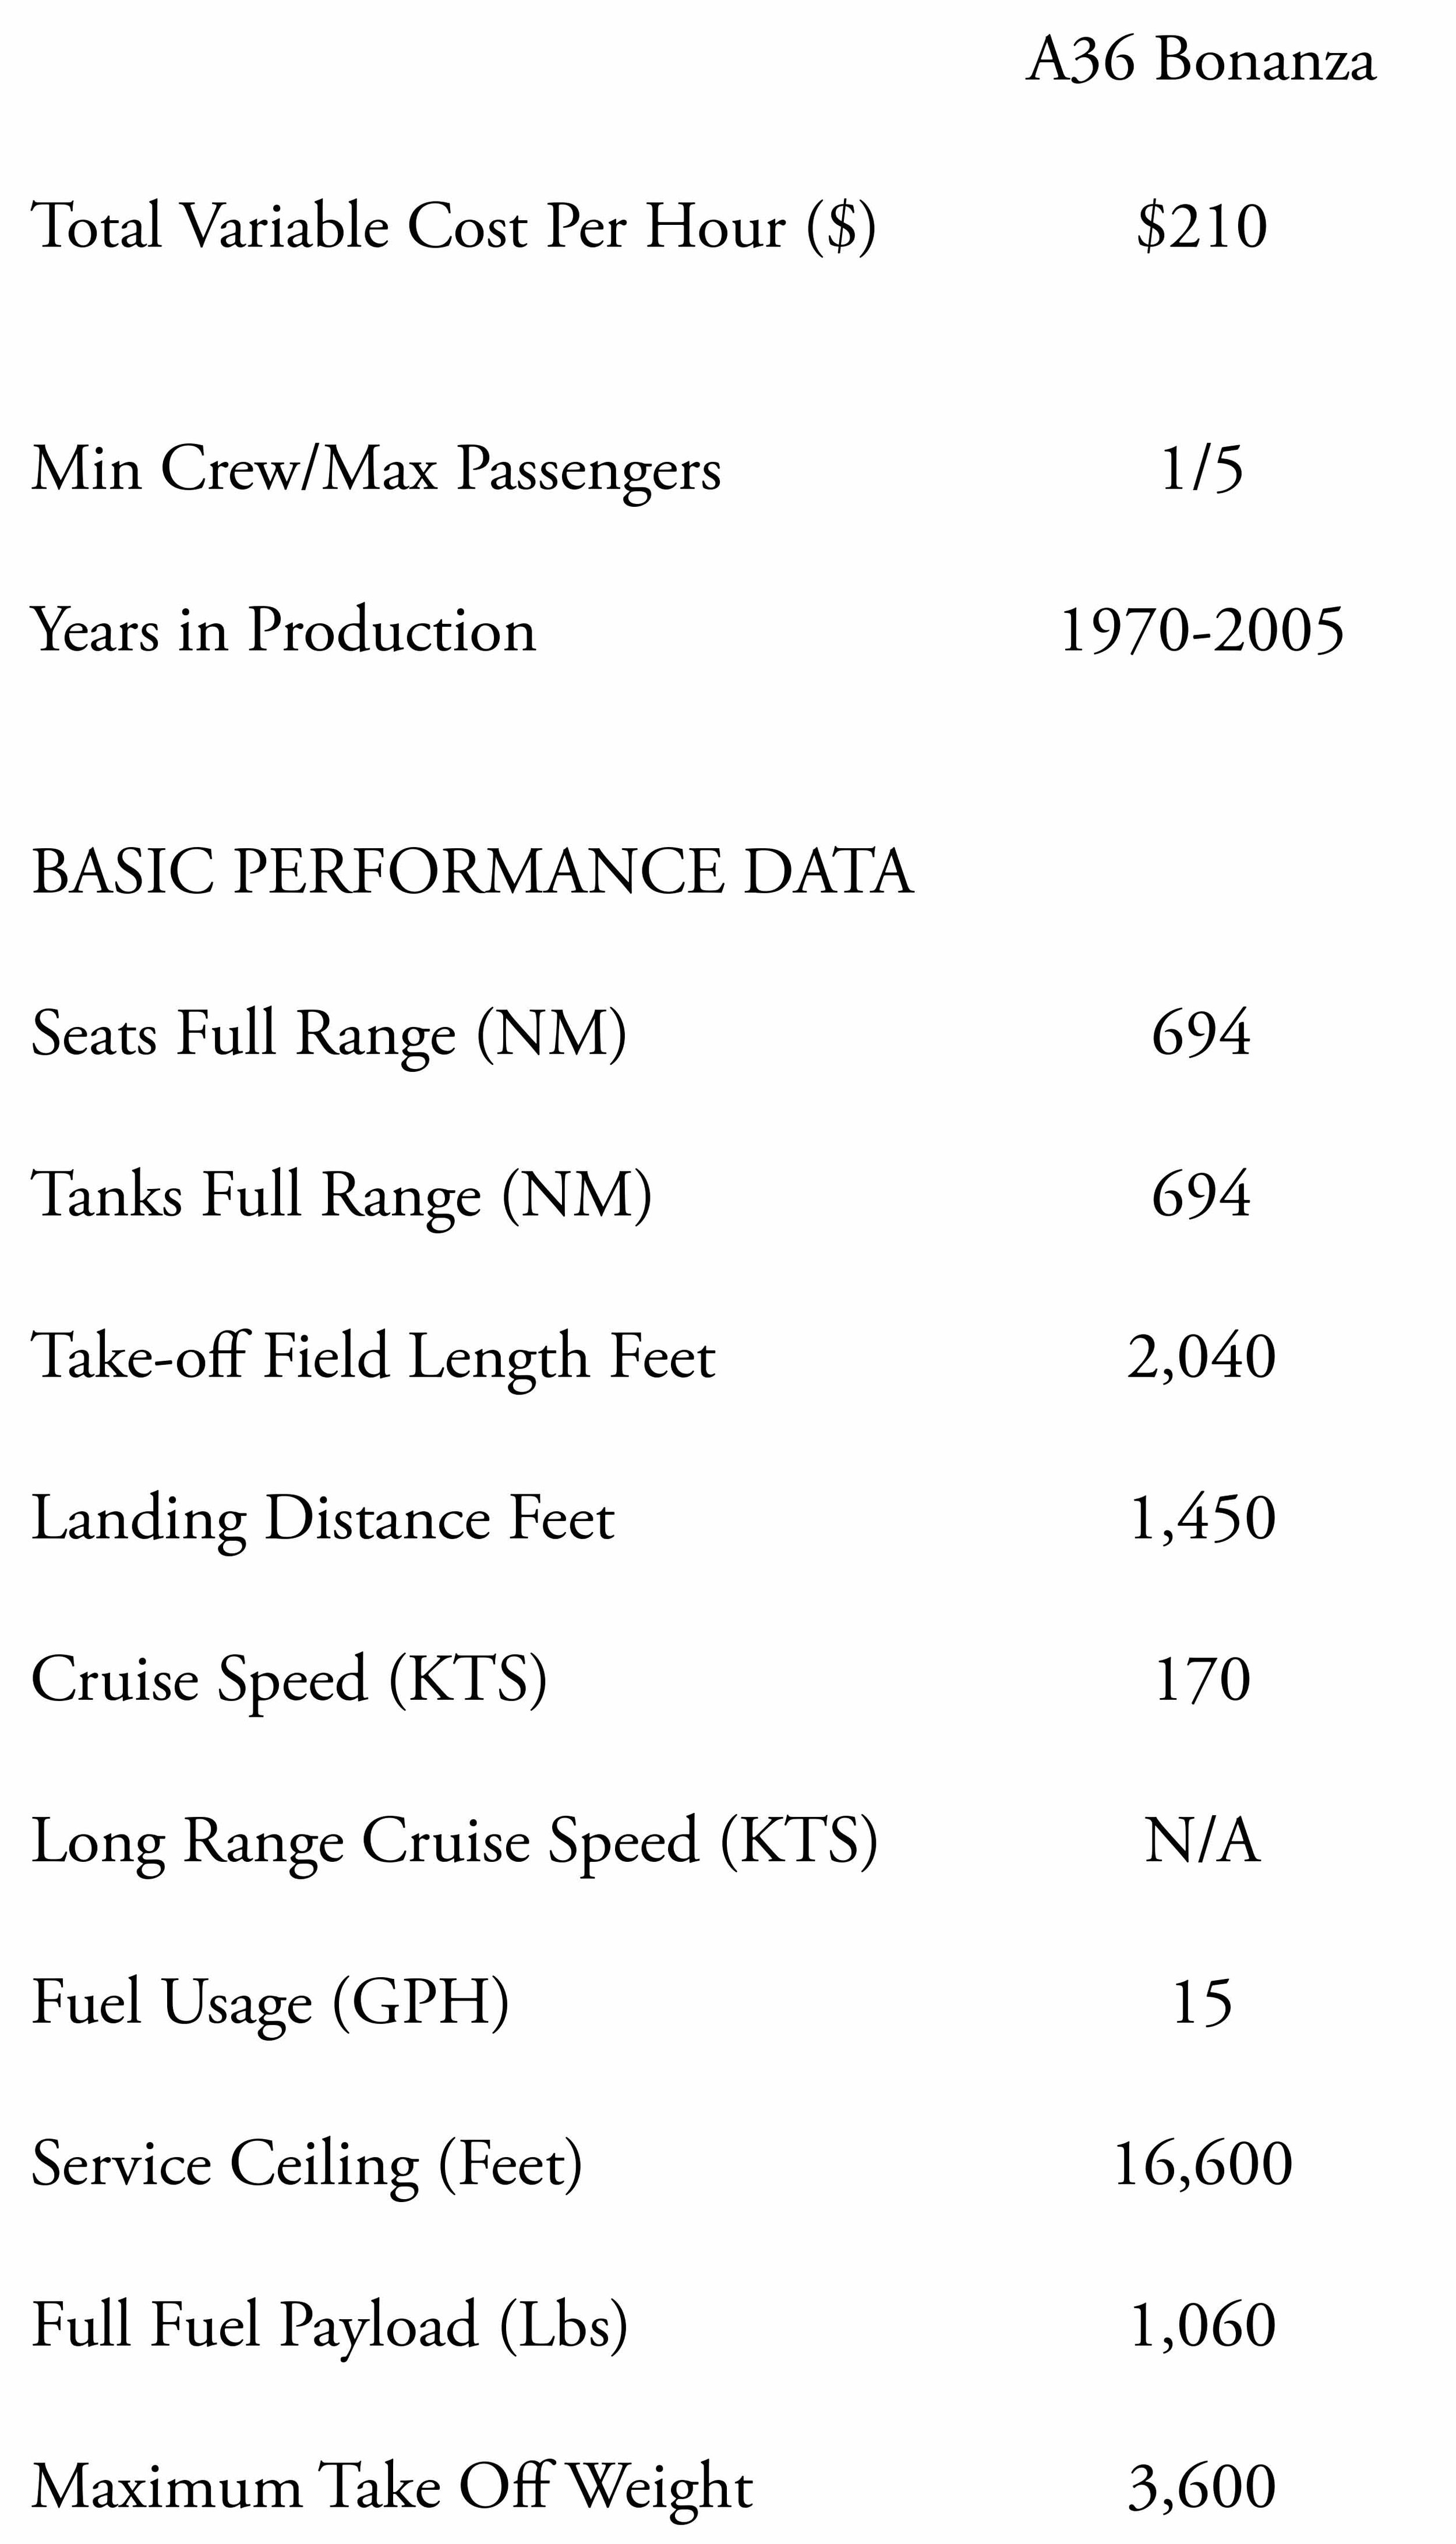 The A36 Bonanza Specs compared to the newer G36 Bonanza. These specifications include: long range cruise speed, range, fuel usage, service ceiling and useful payload.